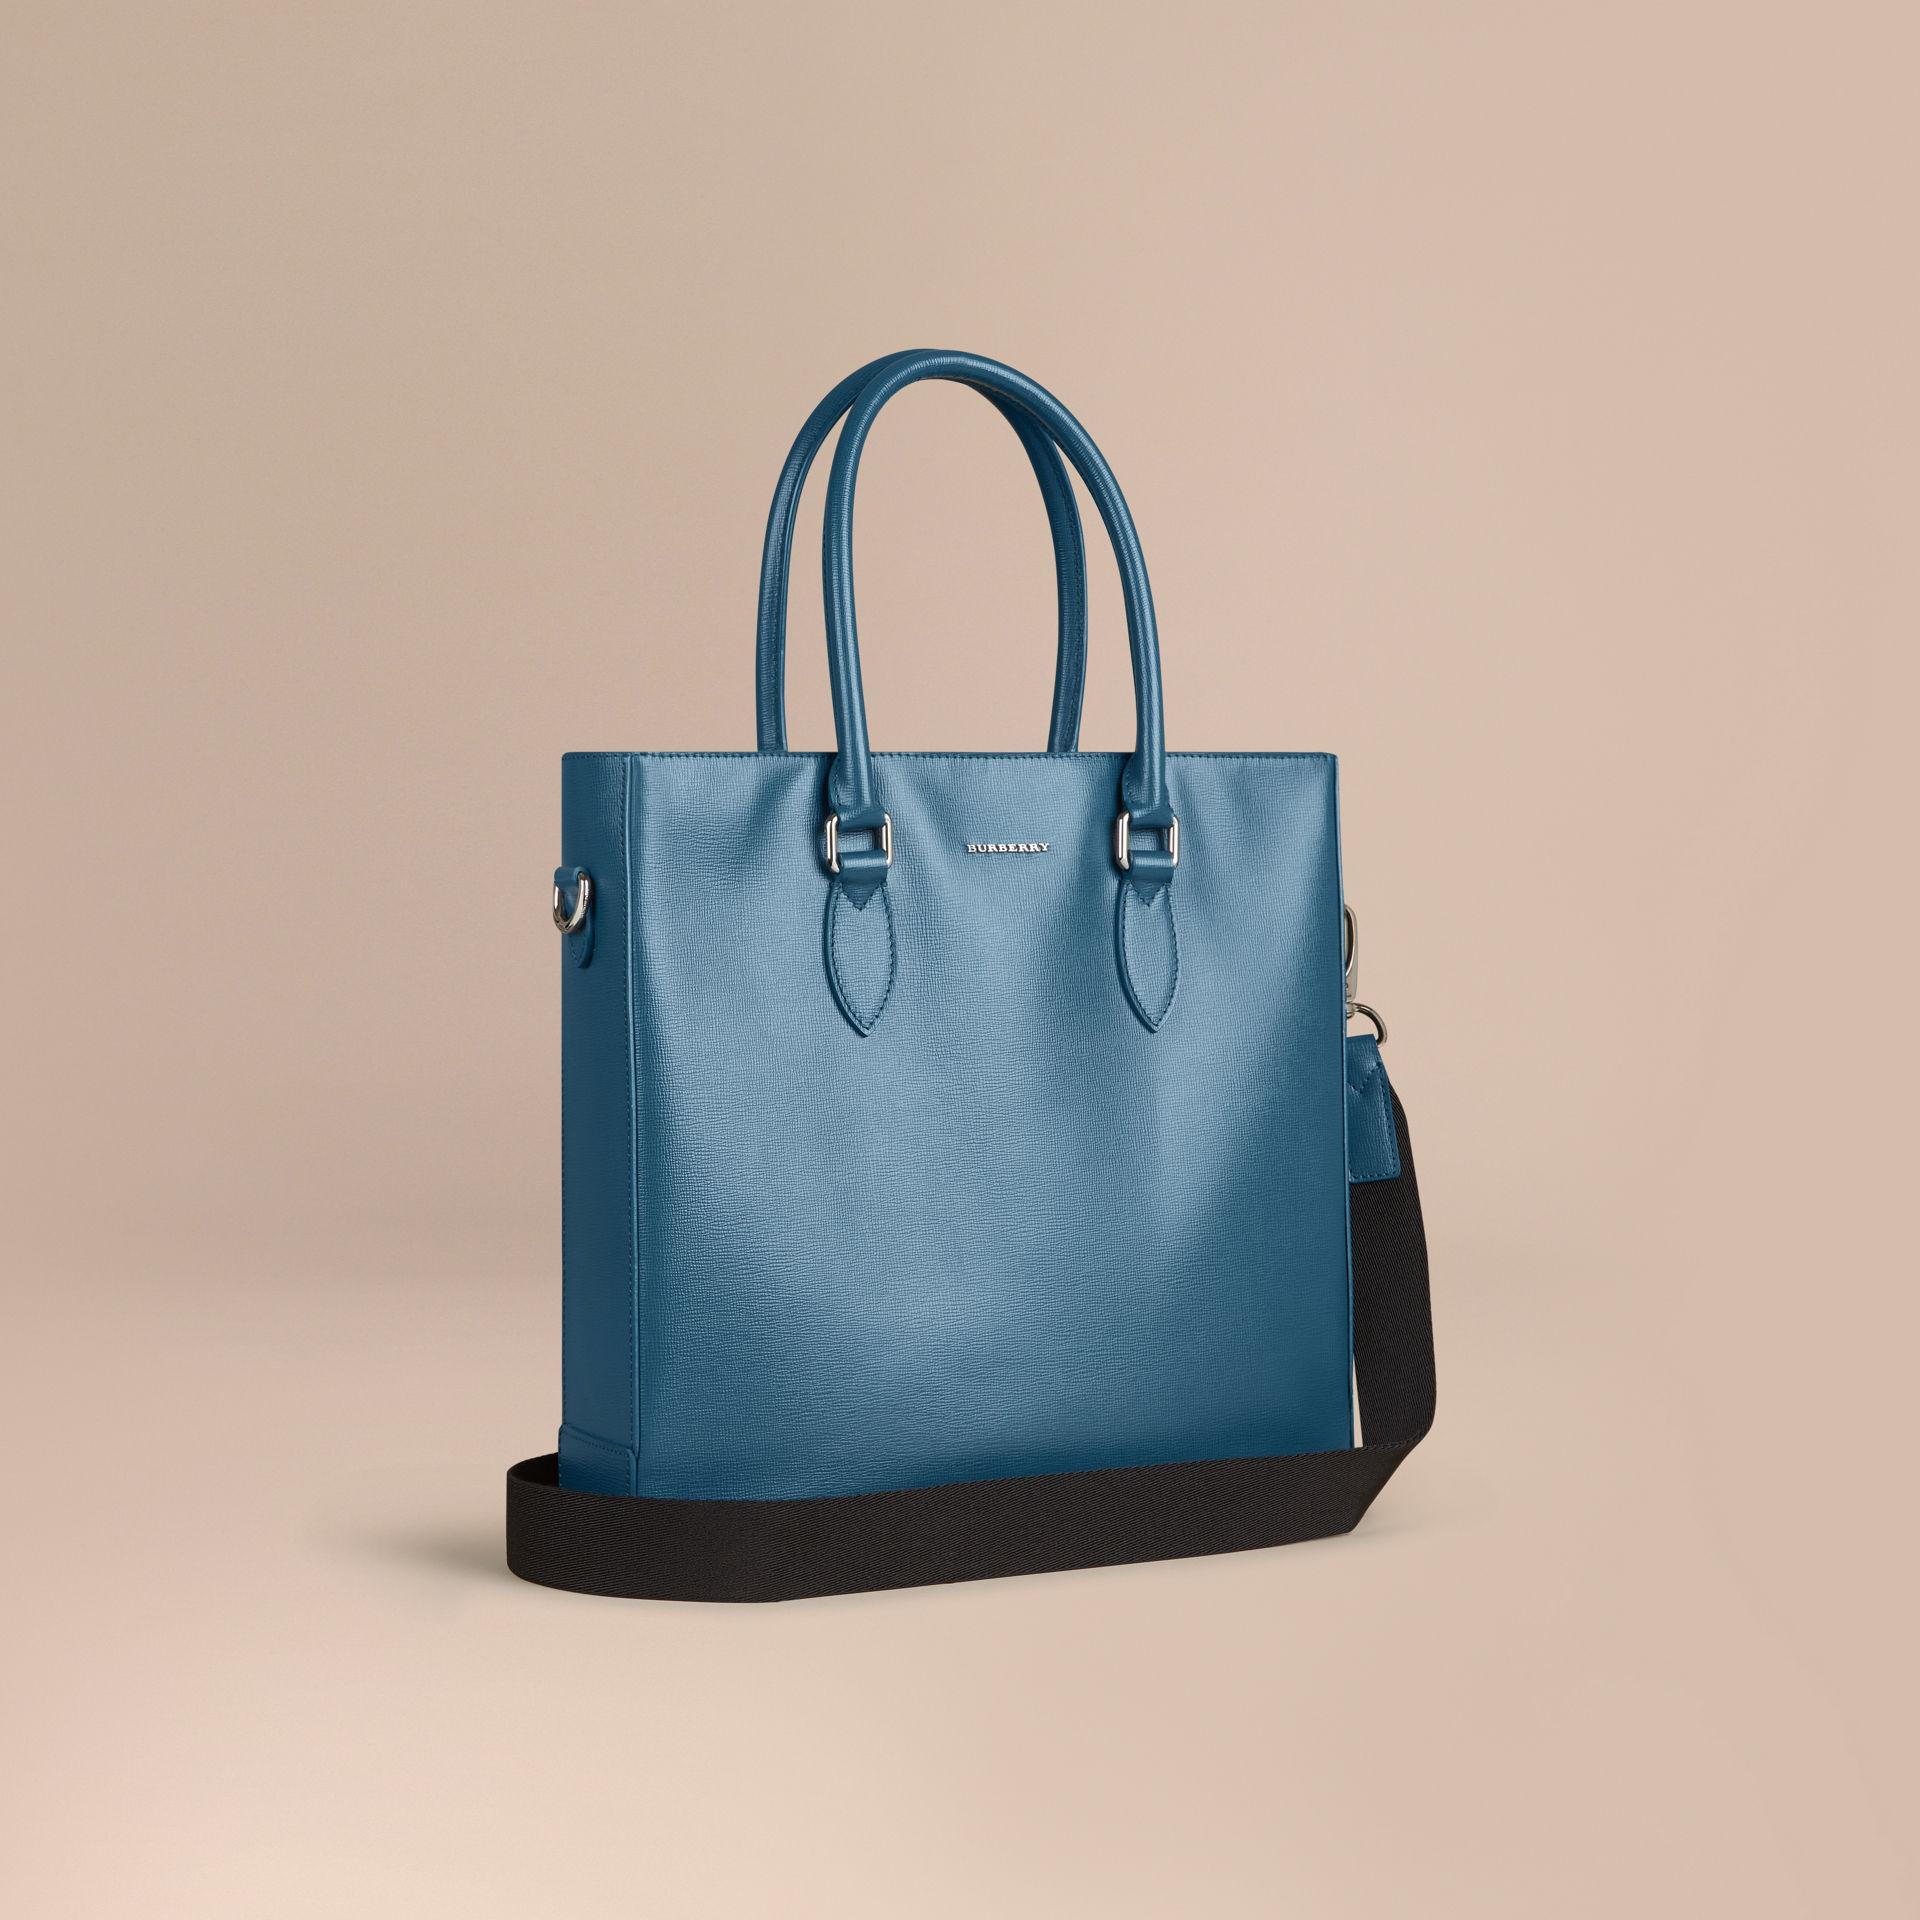 12ab4e5b7322 Burberry London Leather Tote Bag Mineral Blue in Blue for Men - Lyst